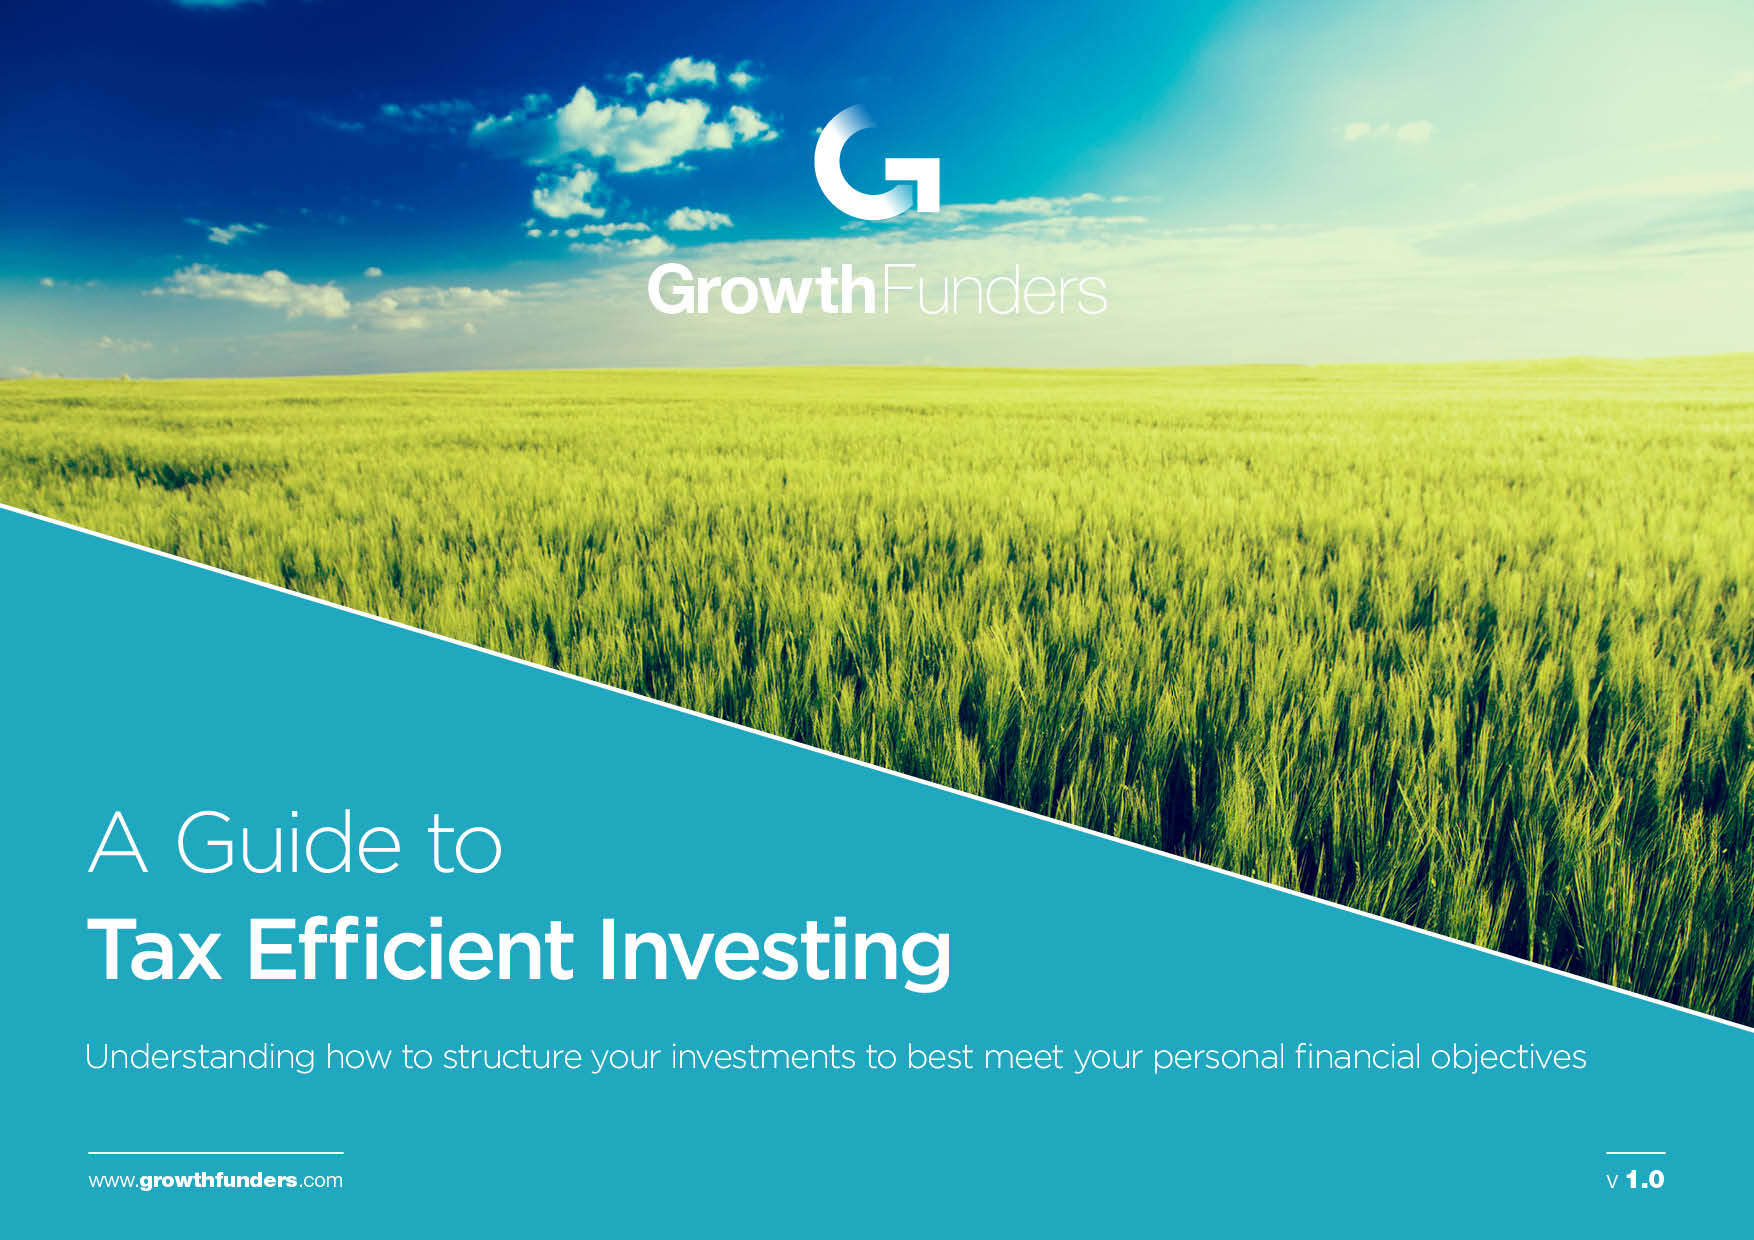 tax-efficient-investing-guide-2.jpg